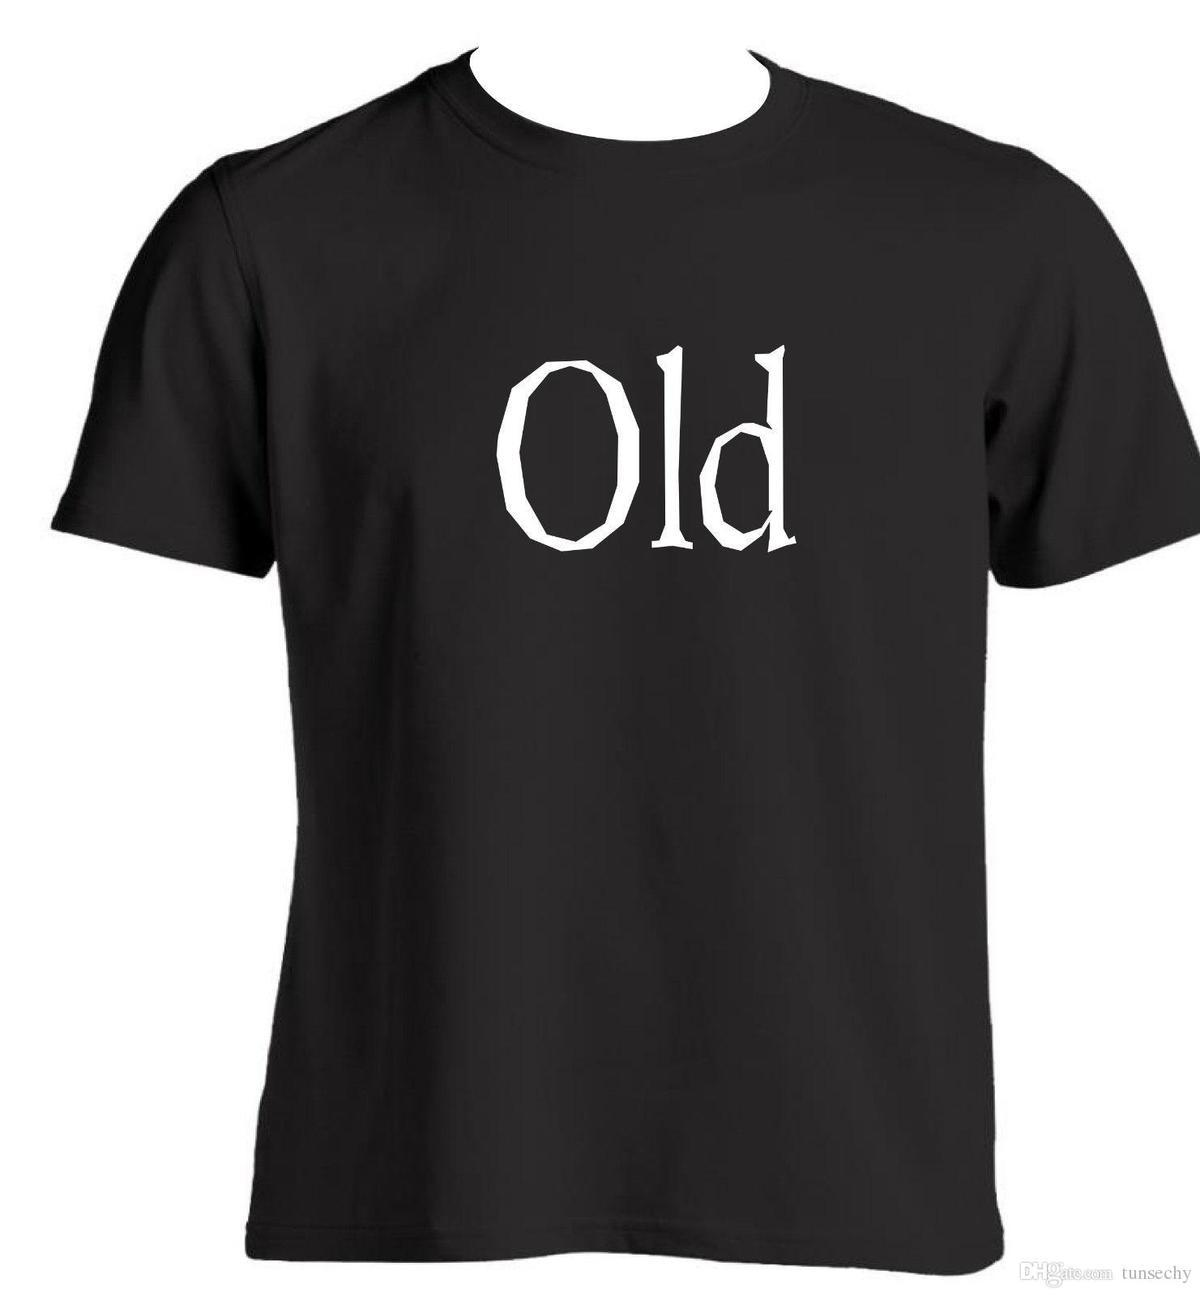 Old Birthday Gift Ideas For A Parent Husband Or Friend Funny T Shirt Novelty Designable Shirts Buy From Jie47 1208